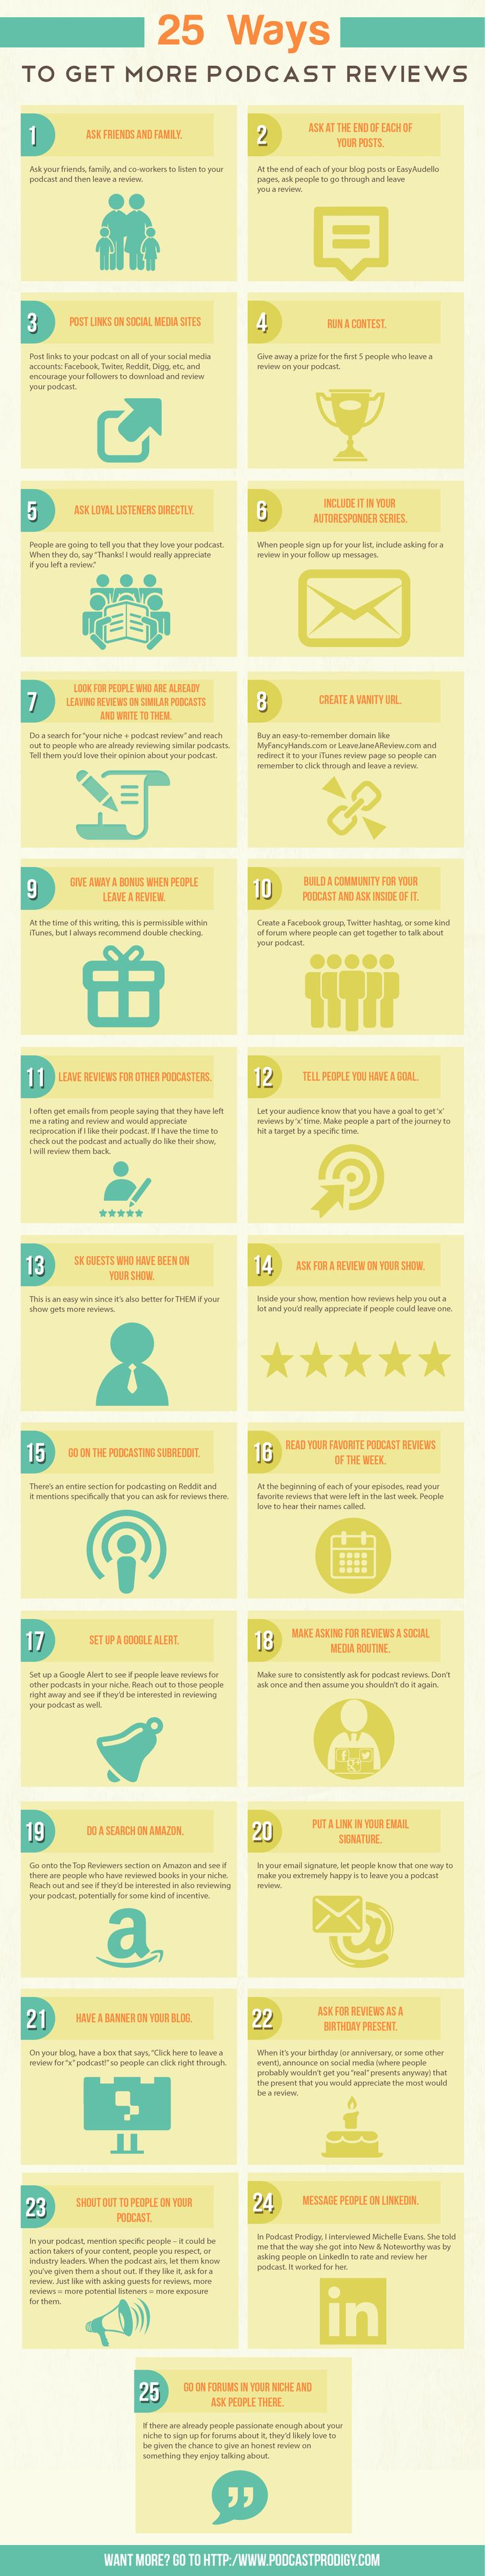 Podcasting tips to get more reviews. :)